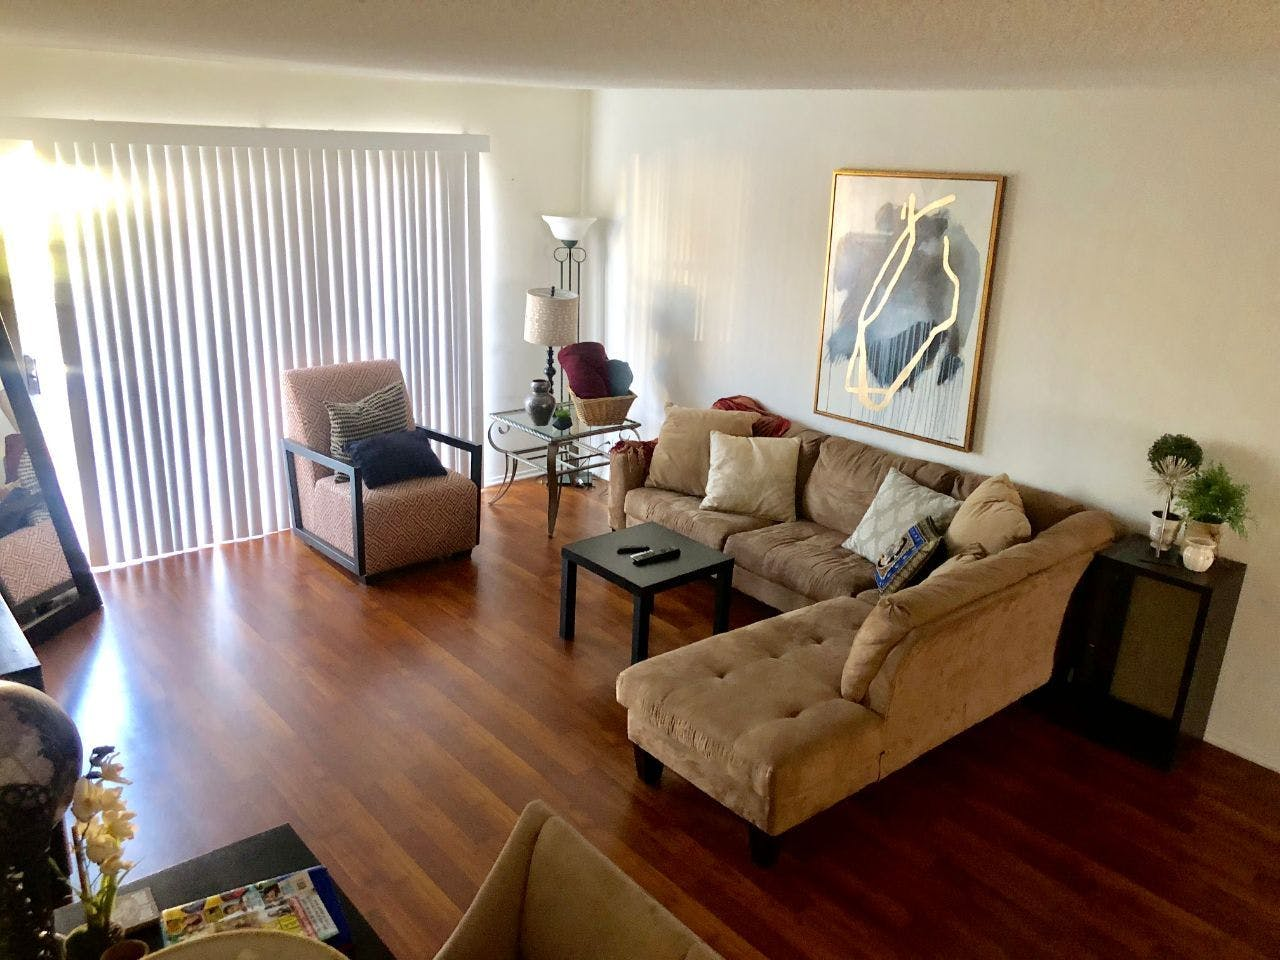 9 Residents | Waring Ave. - West Hollywood - Great location | Bright & Elegant Apt.